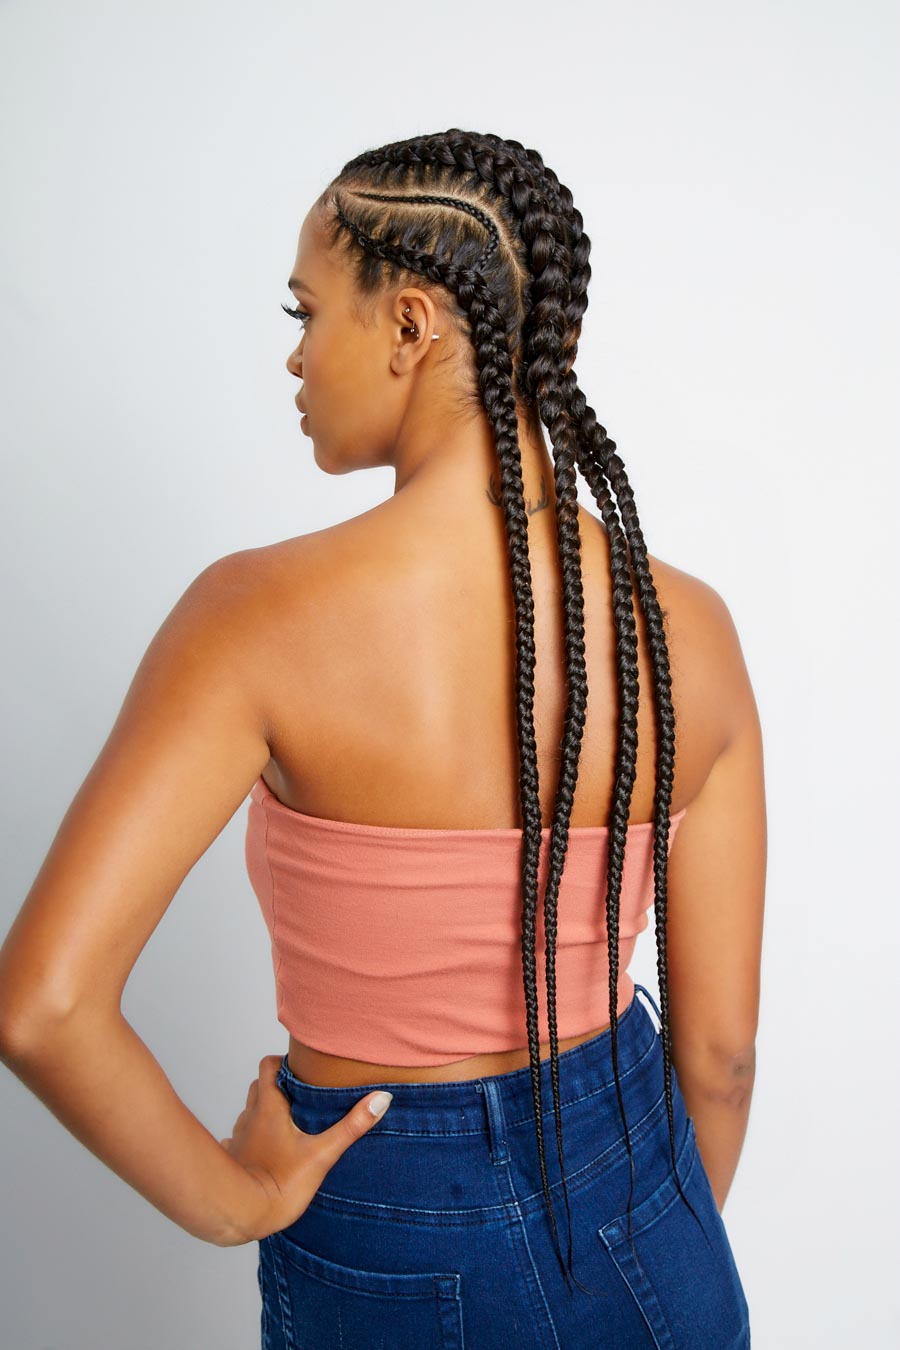 Stitch Braid Cornrows 3 10 Braids Yeluchi By Un Ruly